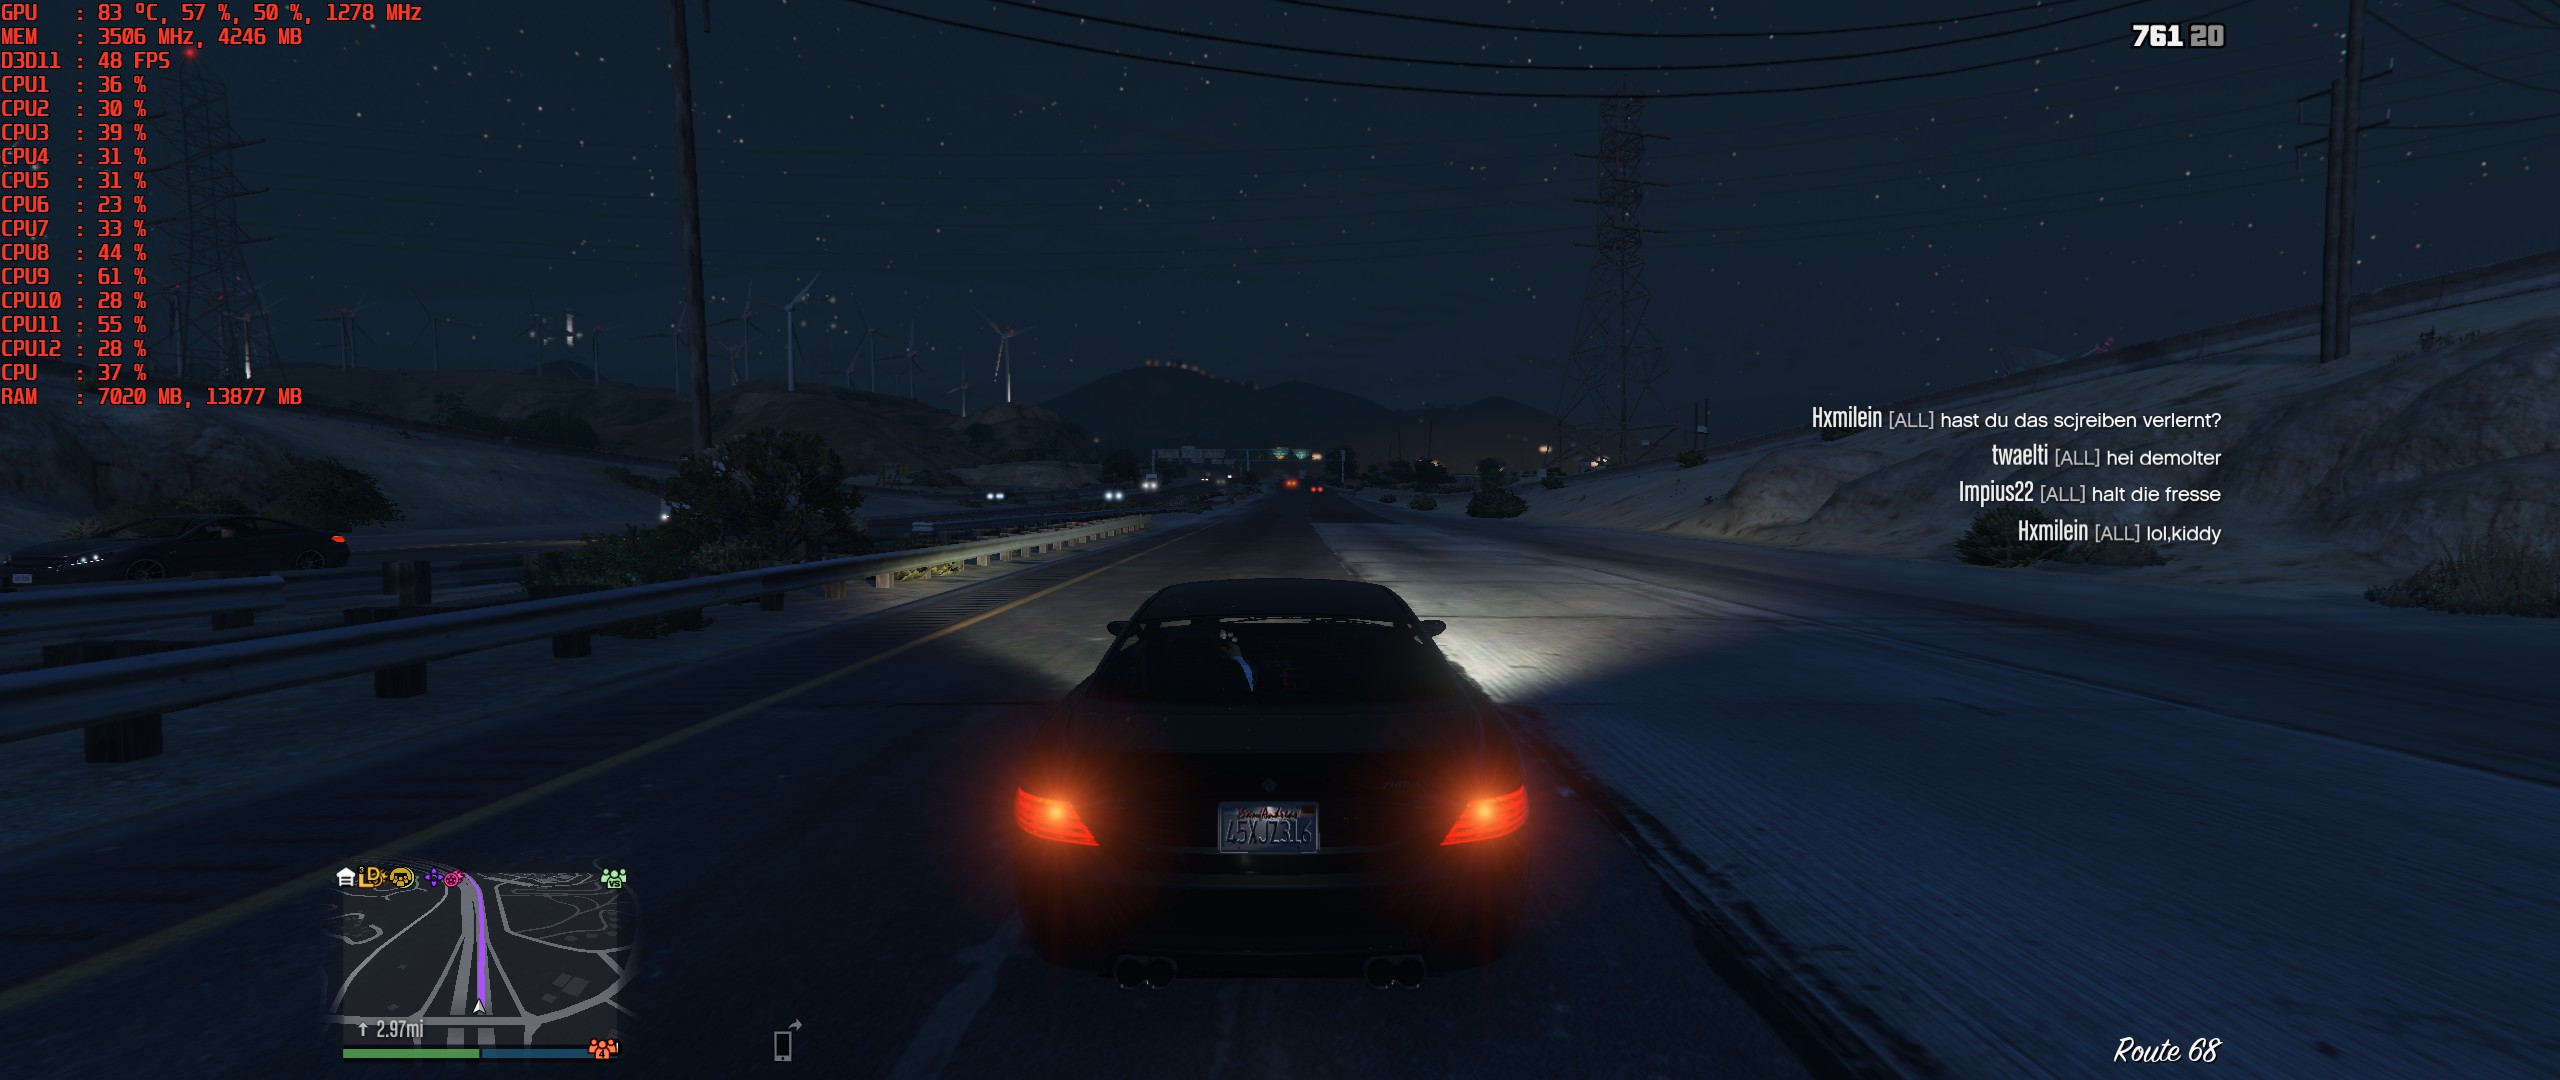 Bad performance in GTA 5? | TechPowerUp Forums